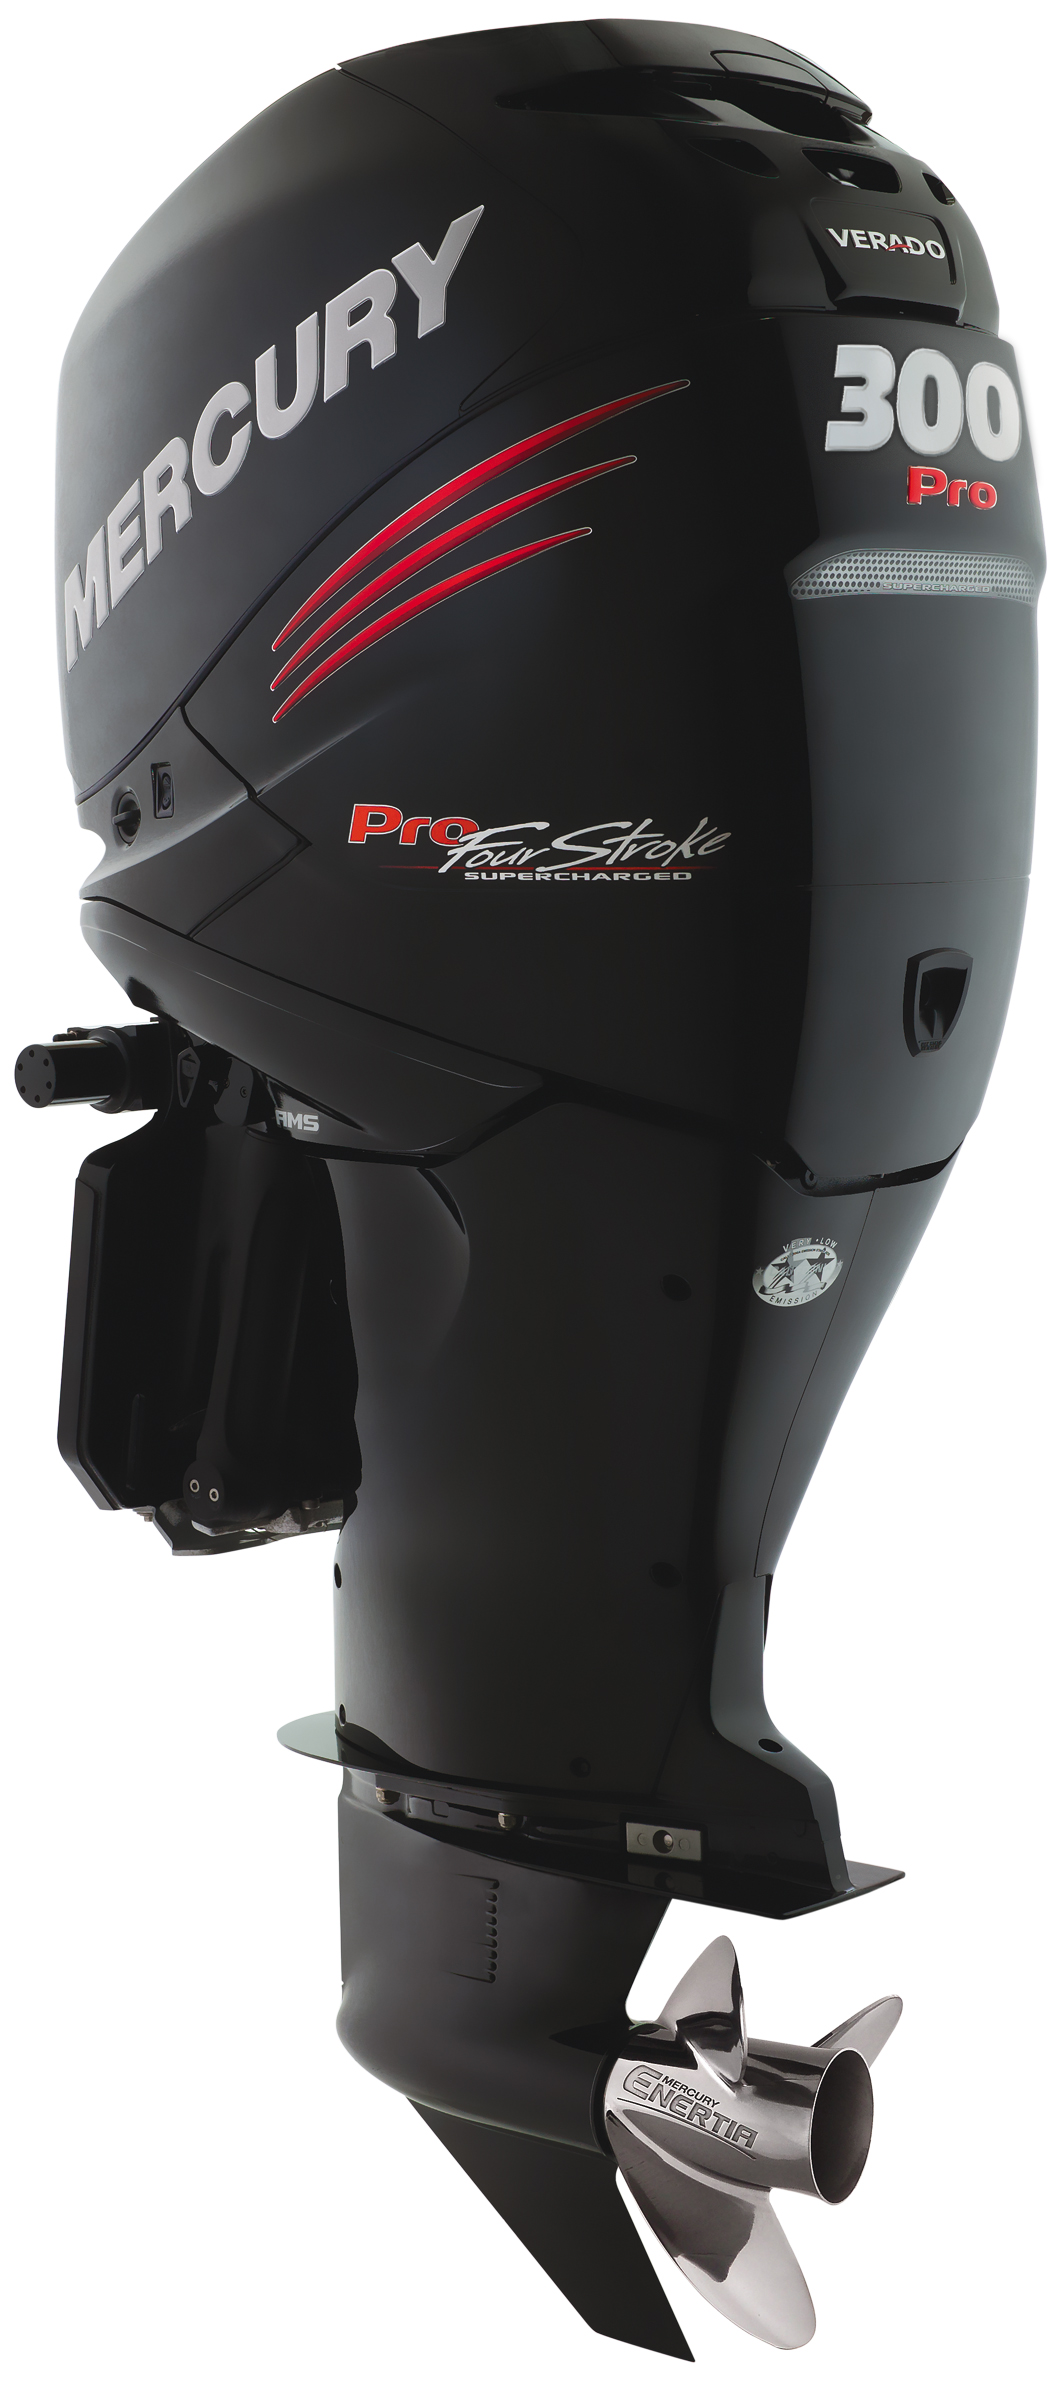 Mercury 4 stroke outboard for sale buy and sell boats for Mercury 2 5 hp outboard motor for sale